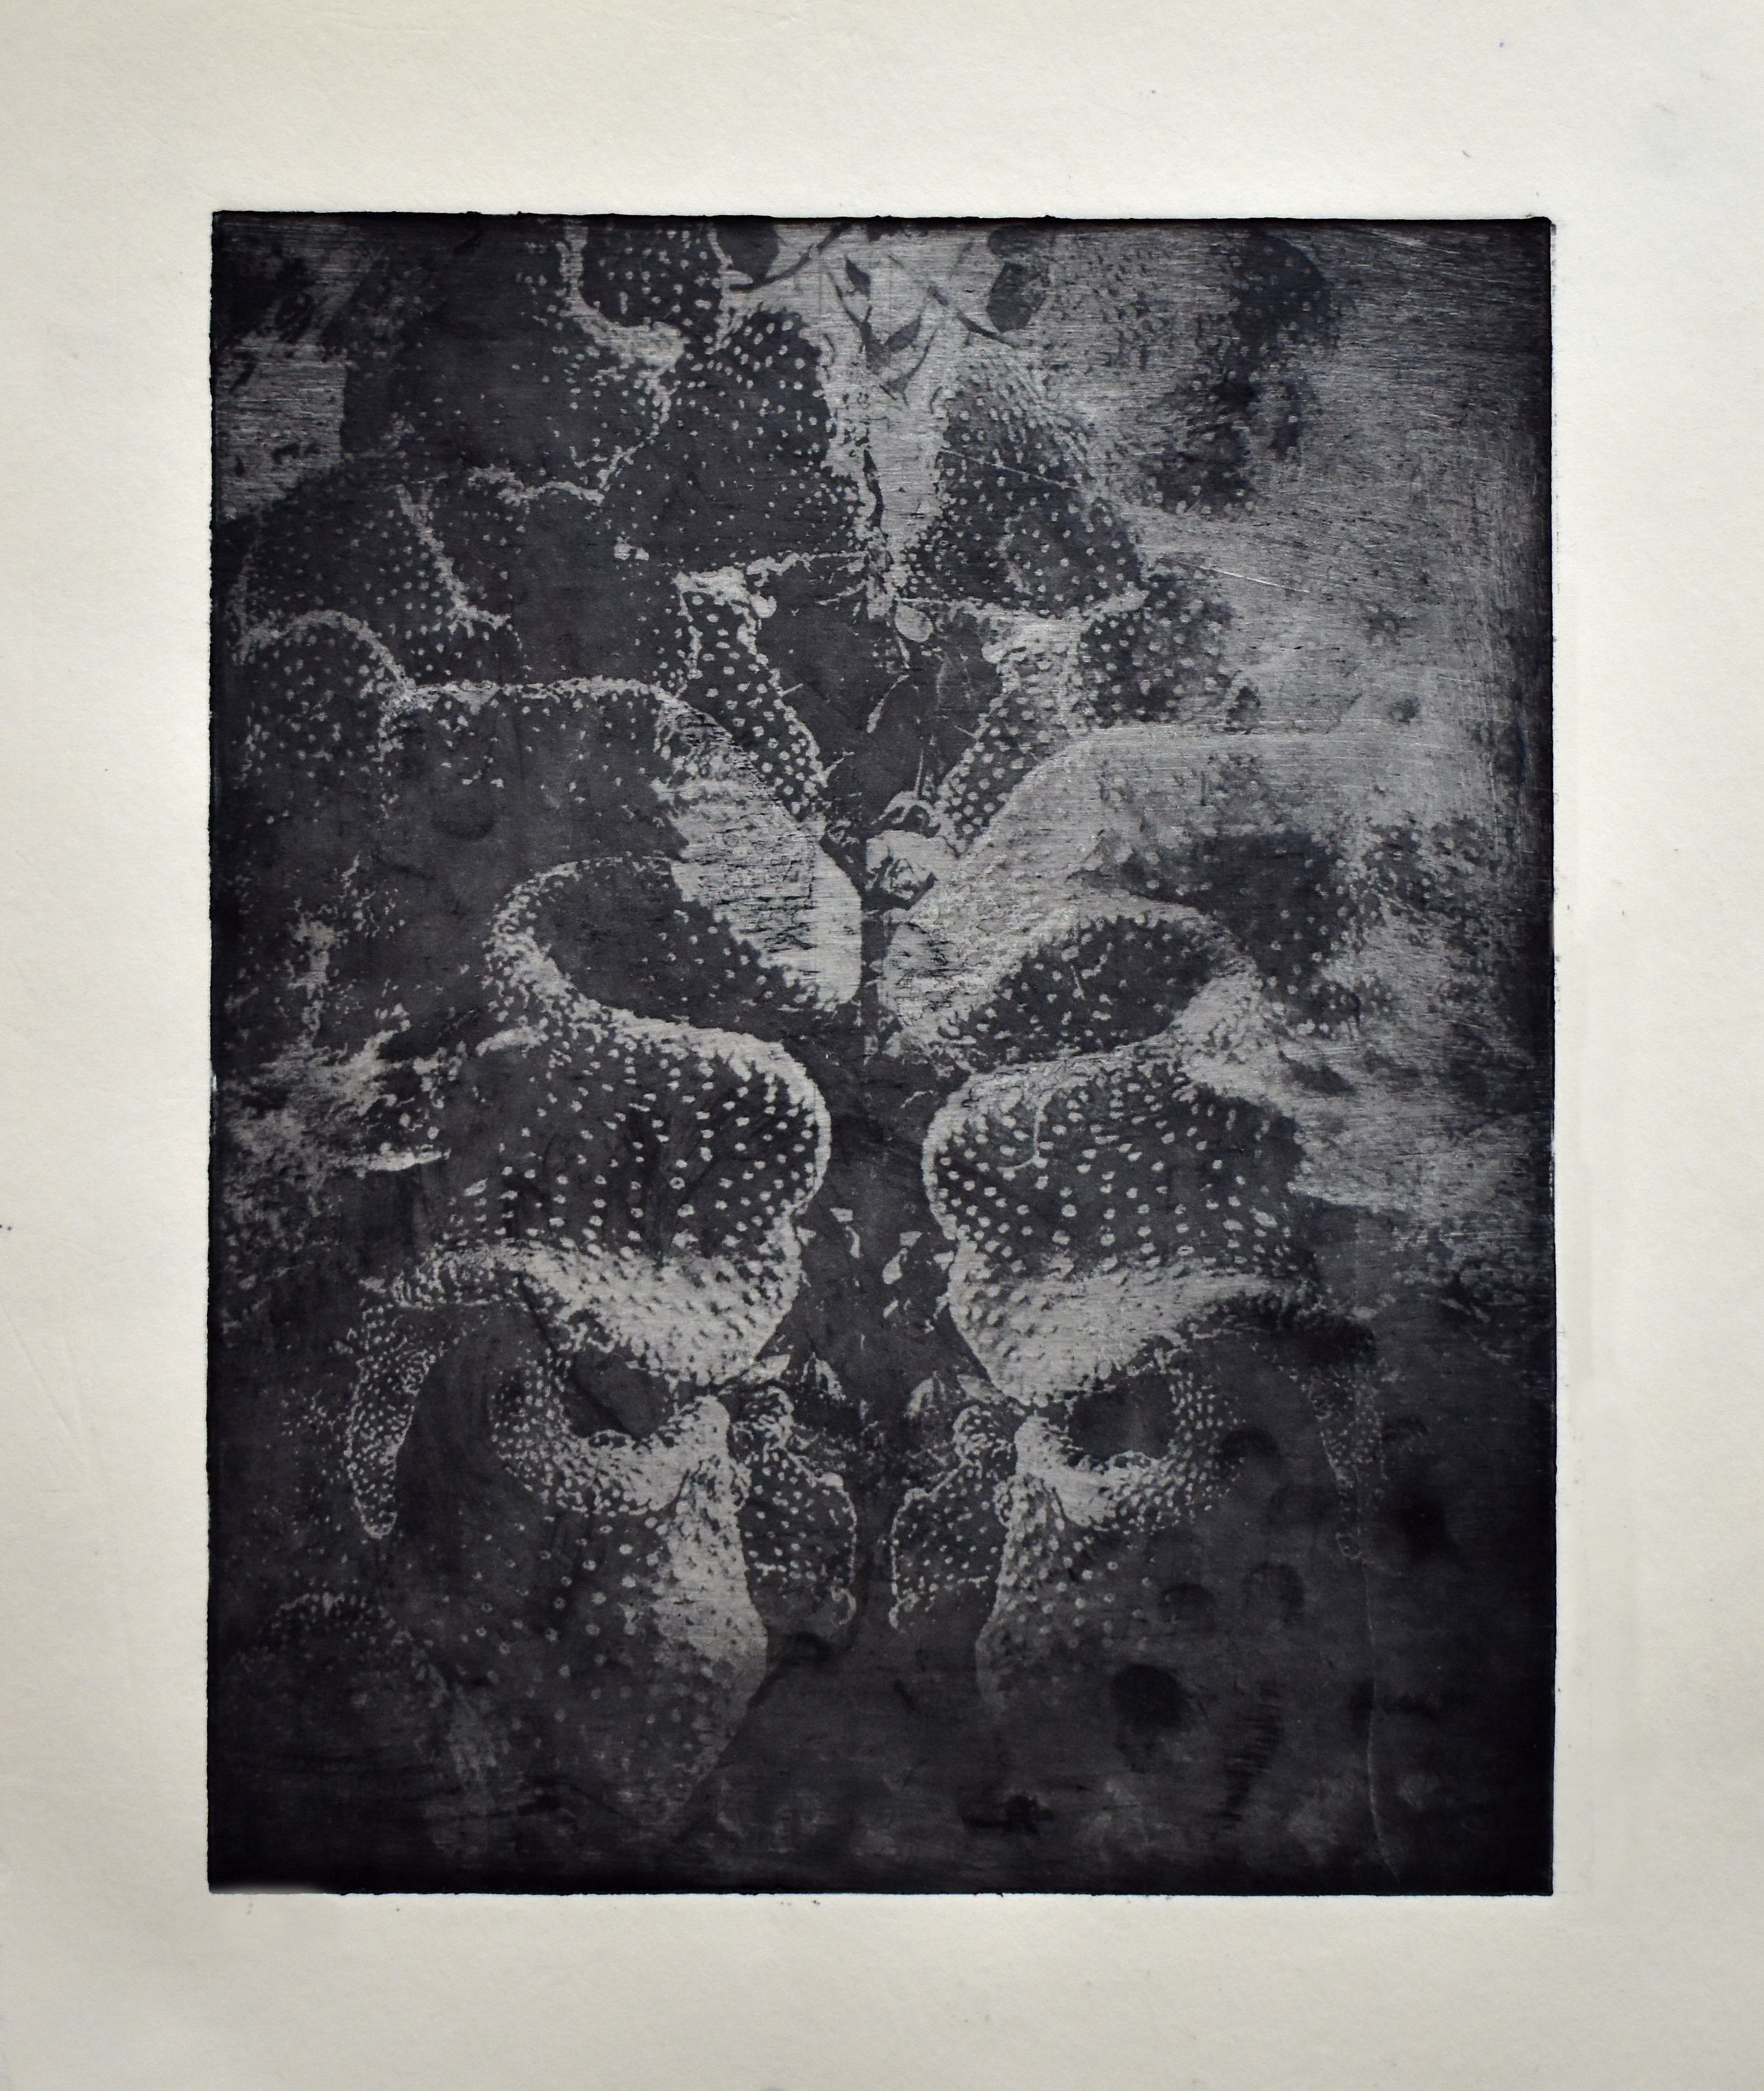 Study No. 7 (opuntia rufida Cristala),  2018. Photo-etching. Superposition of macroscopic photographs of the cctus opuntia rufida Cristala cactus (Madrid Botanical Garden, Spain)and a microscopic photograph of an abalone shell collected in Sintra, Portugal.